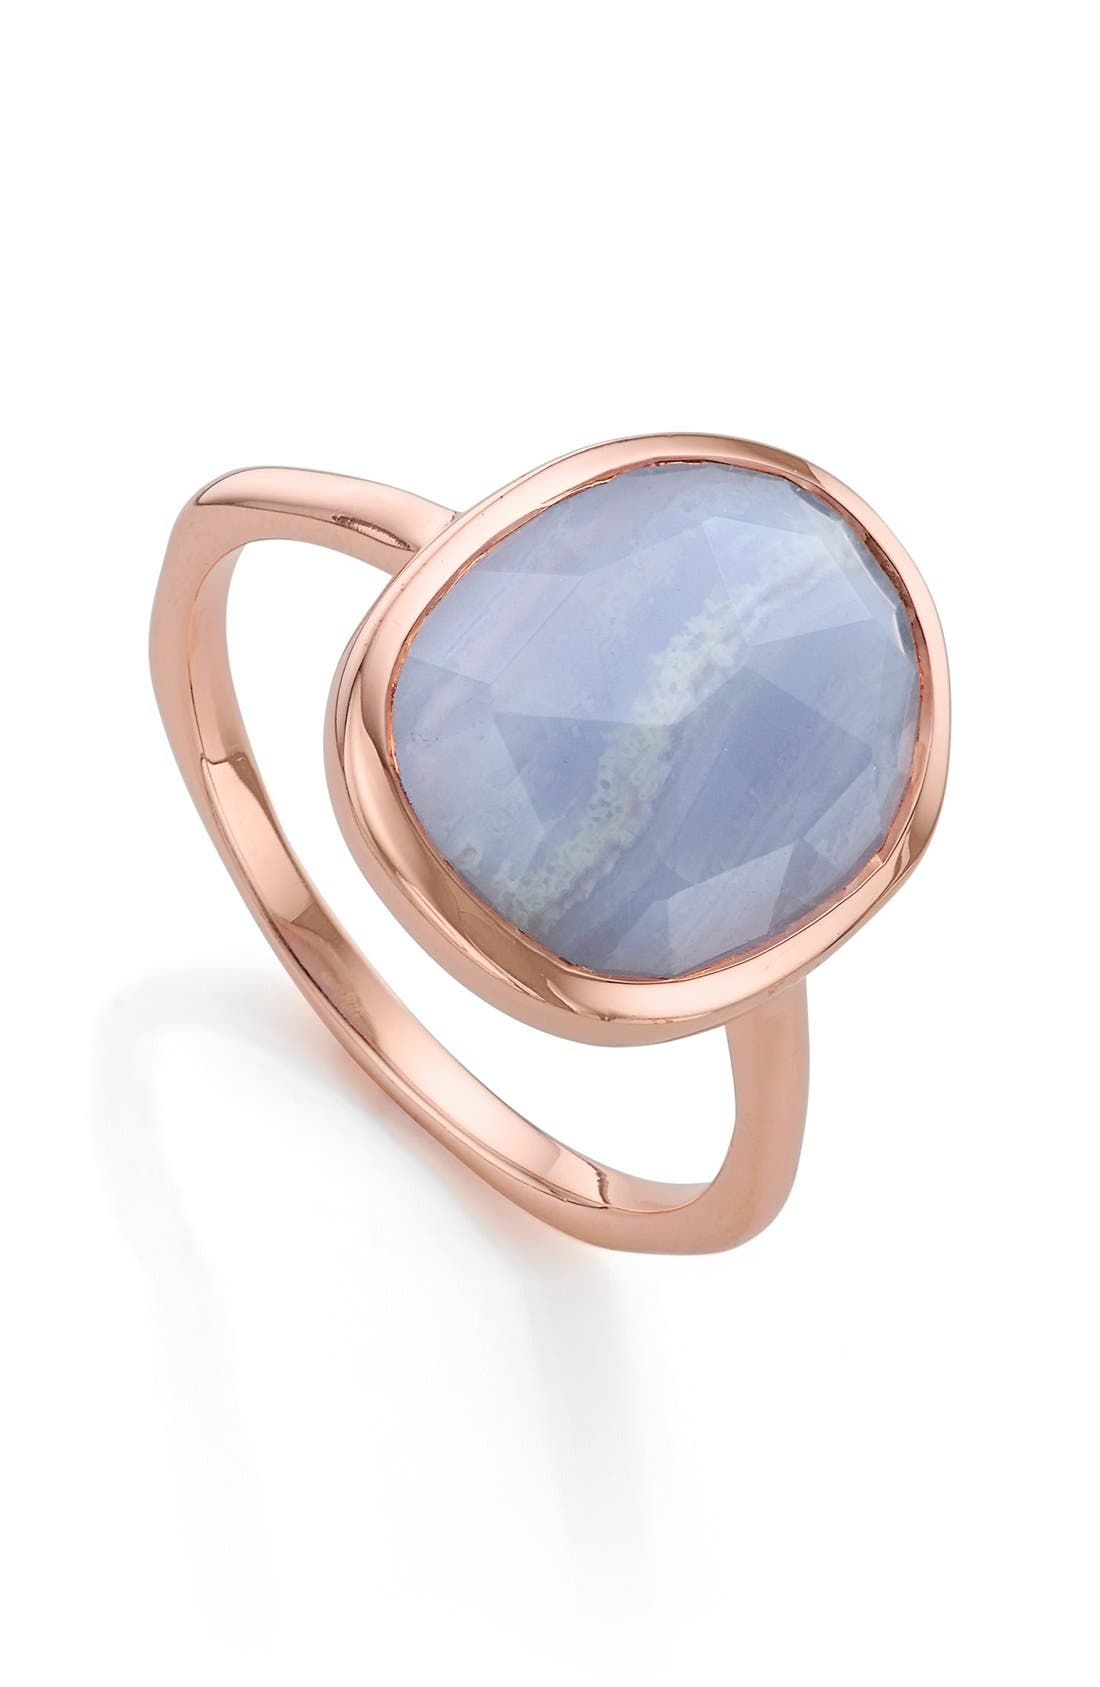 Alternate Image 1 Selected - Monica Vinader 'Siren' Medium Semiprecious Stone Stacking Ring